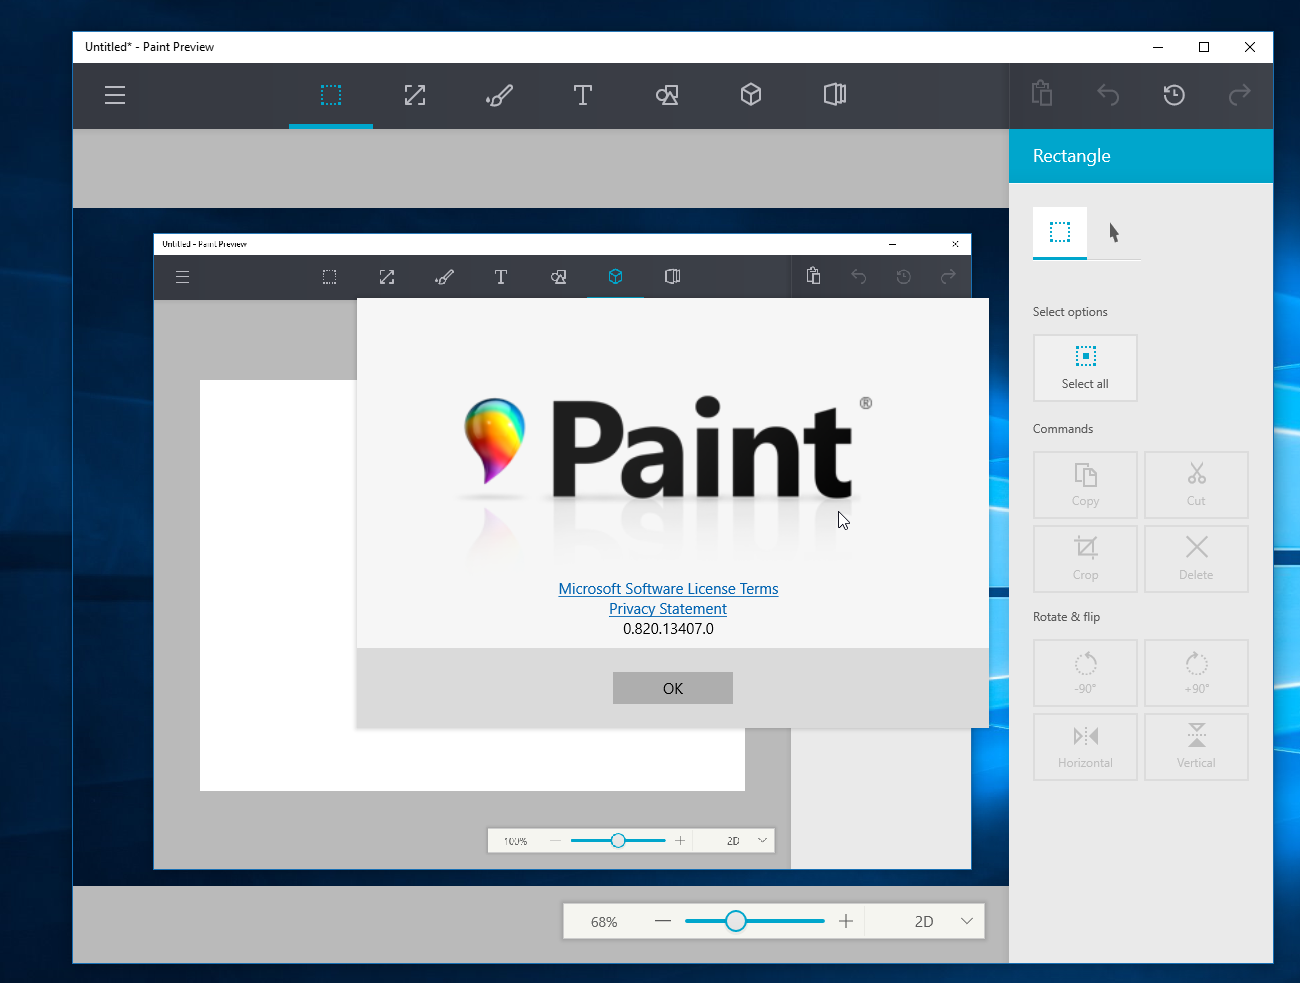 Windows 10's upcoming Paint app leaks online - MSPoweruser